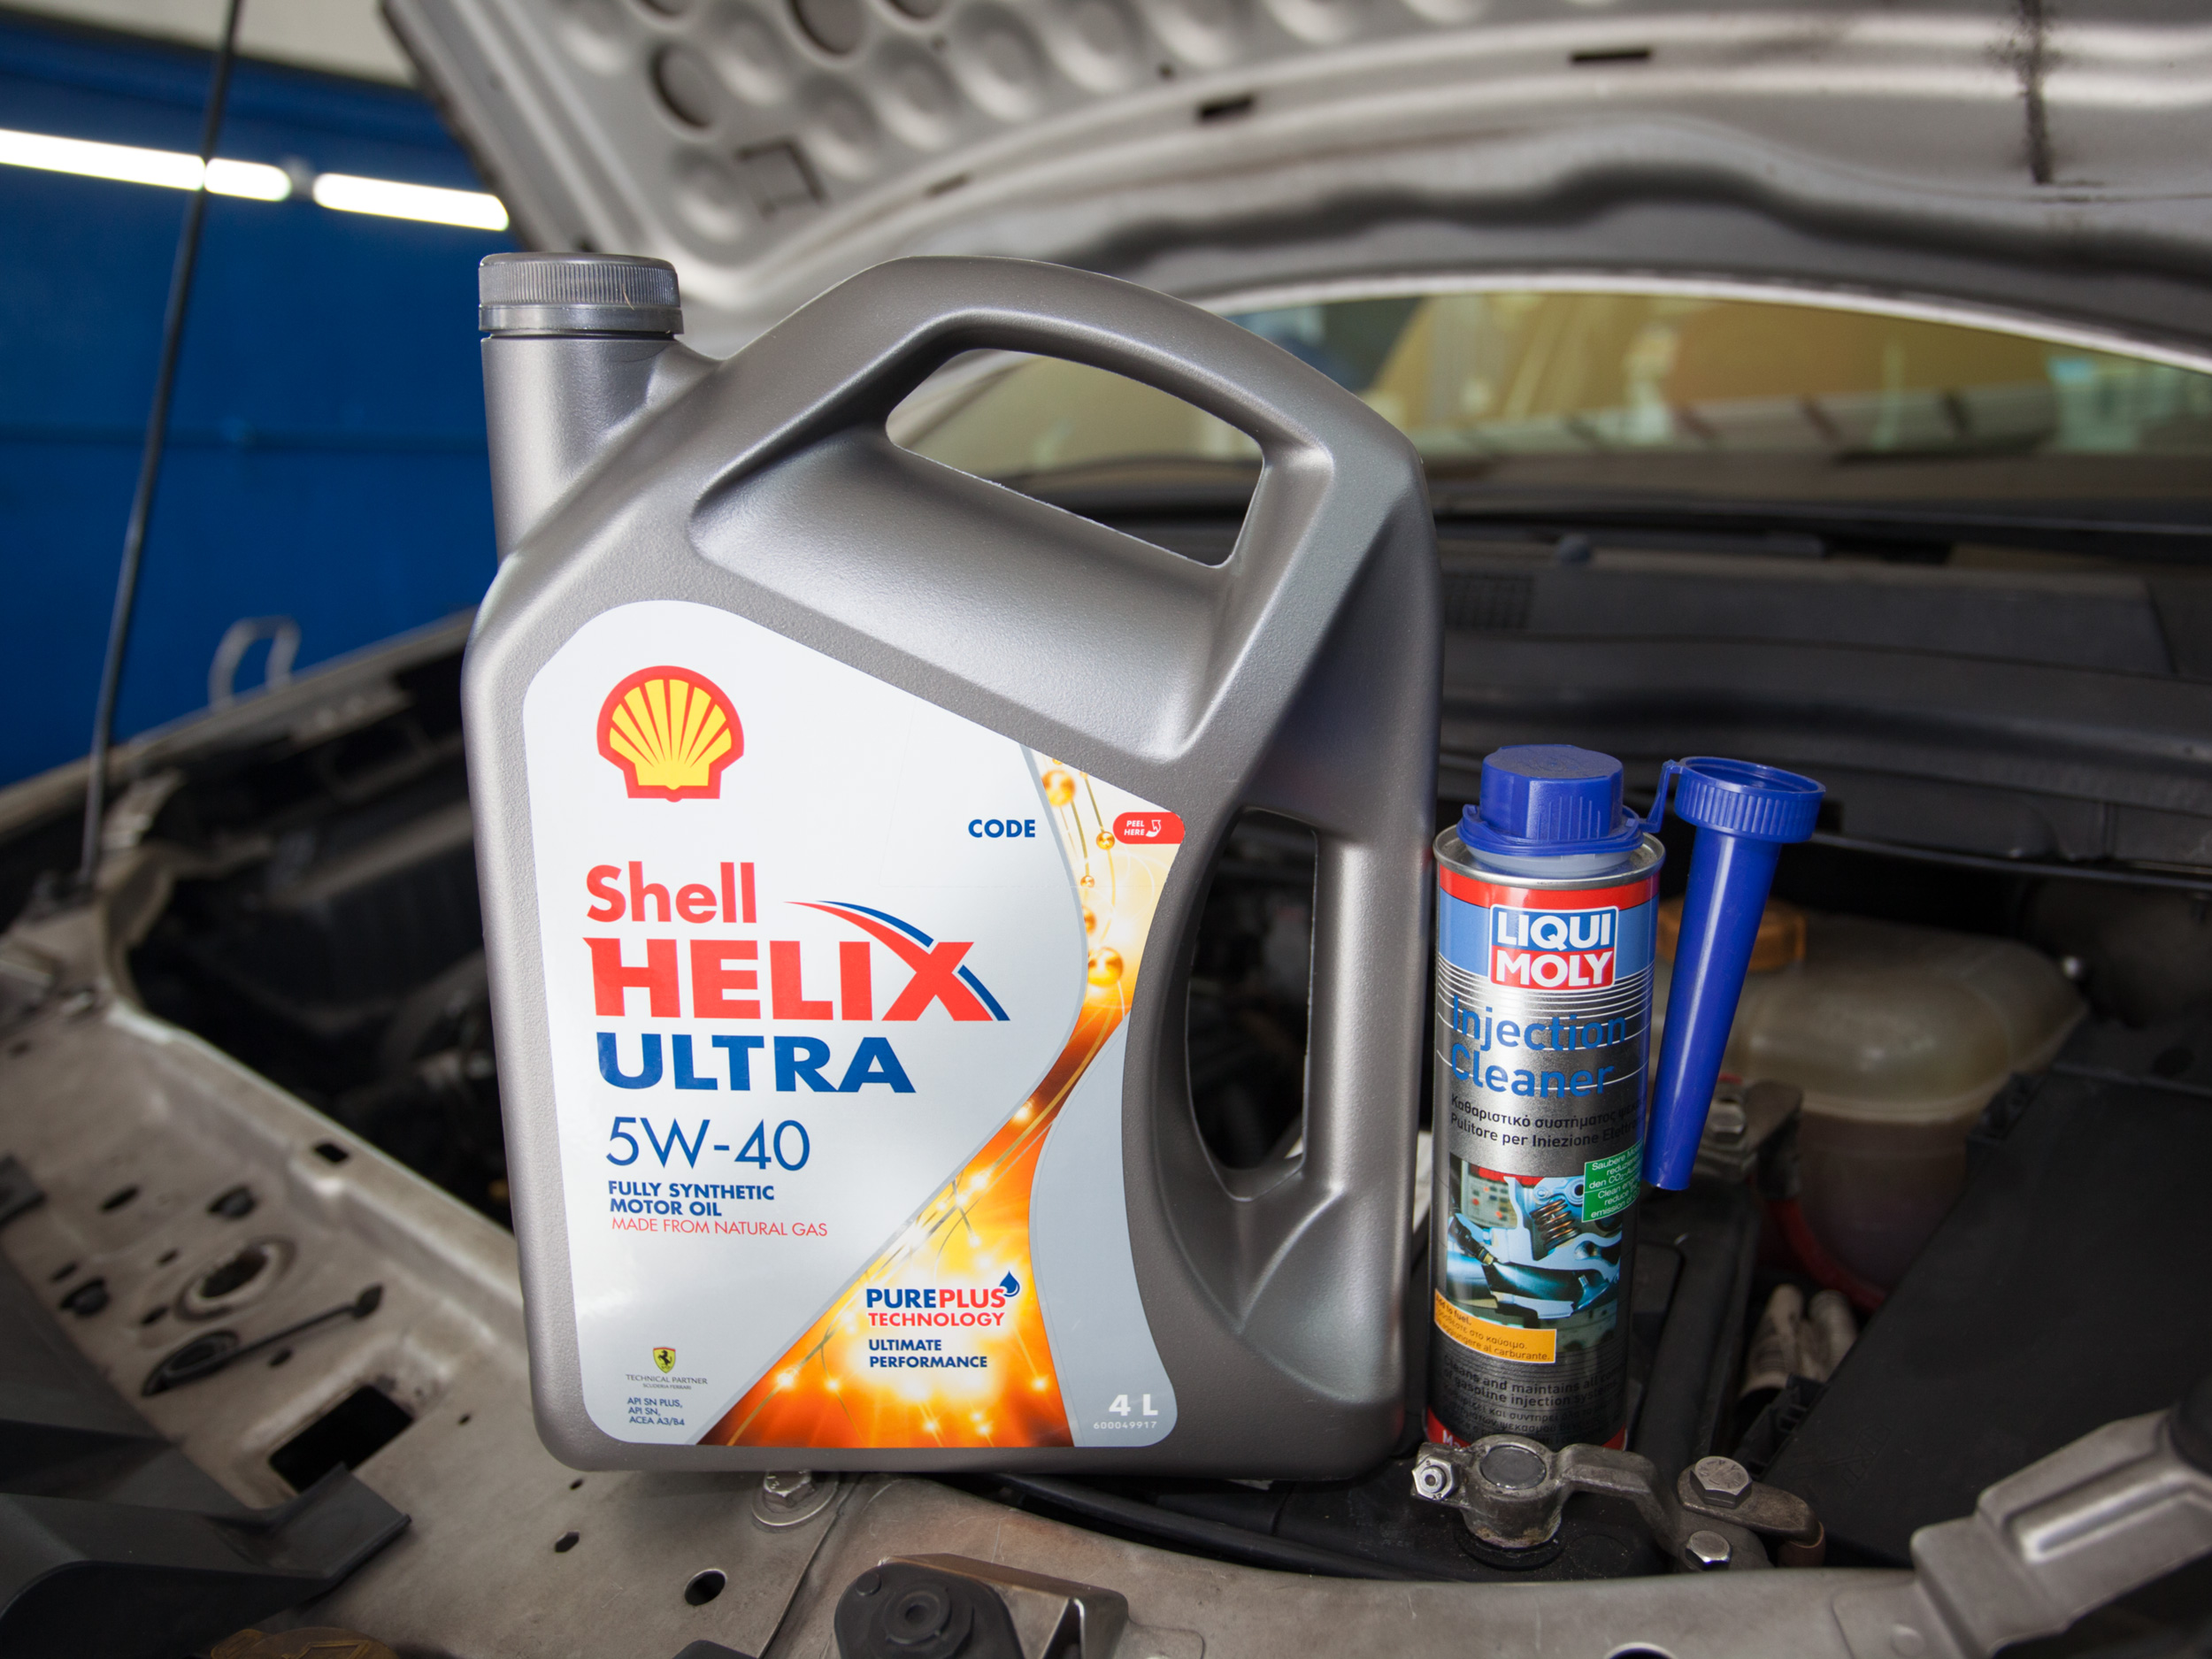 Shell Helix Ultra 5W40 Vehicle Servicing